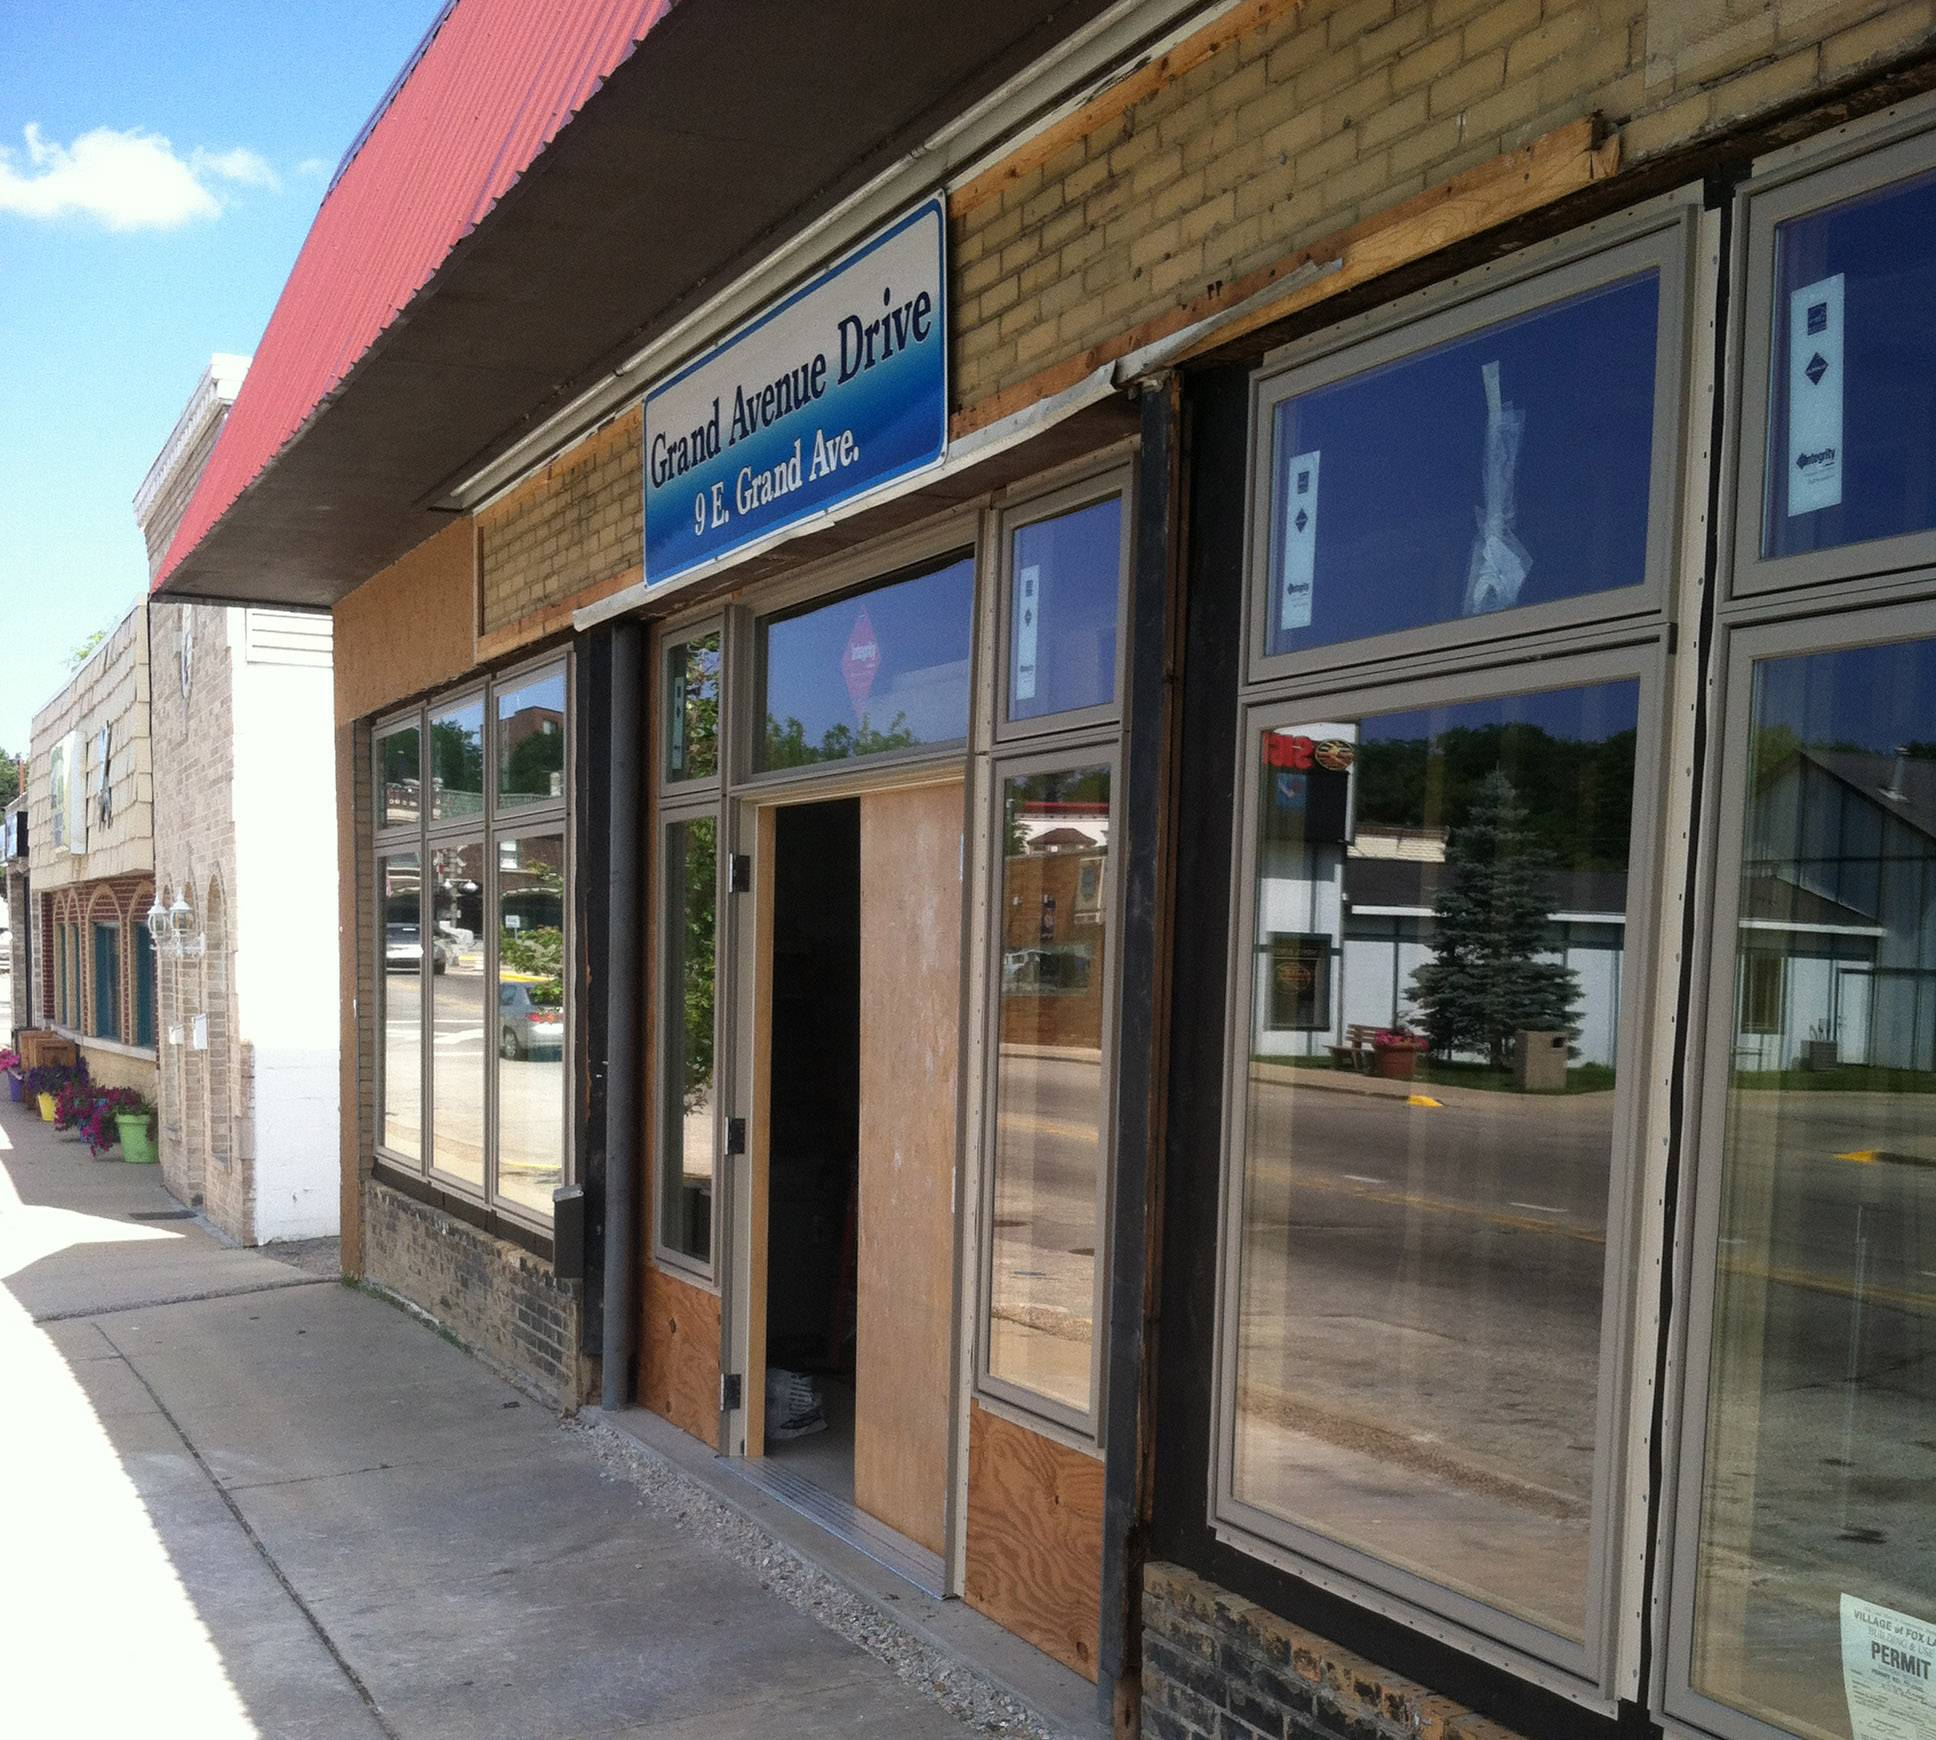 Fox Lake officials said a mistake was made in approving two grants for $8,000 to business property owner and village Trustee Ronald Stochl for facade improvements to his downtown storefront. The village ordinance limits eligible property owners to one grant per fiscal year.